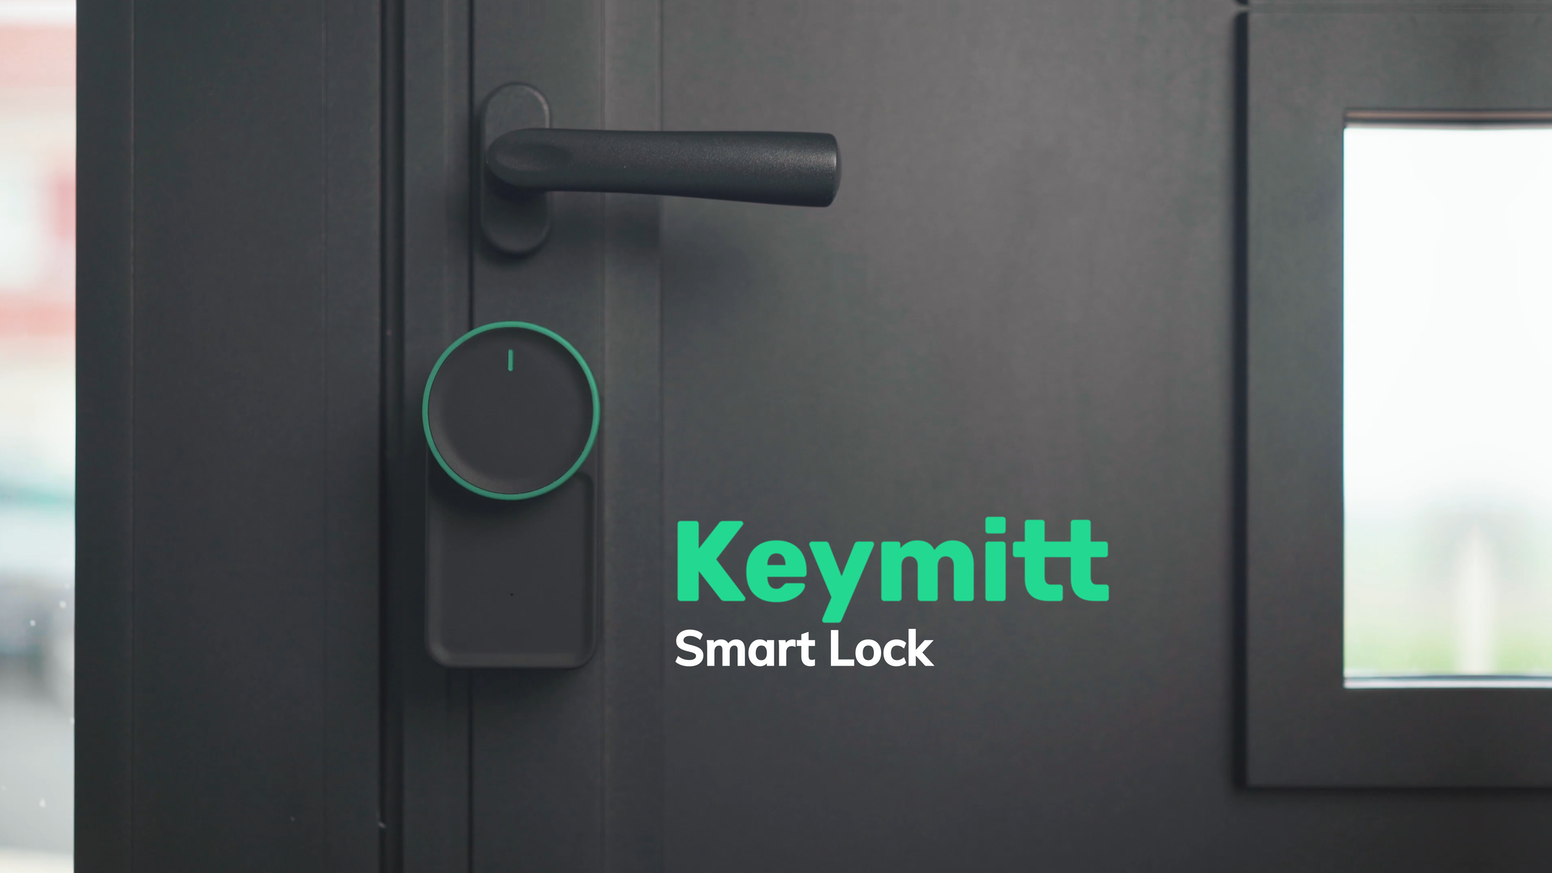 Retrofit your existing lock to be smart with ease - Universal - Secure - Automated - Quality German Engineering.